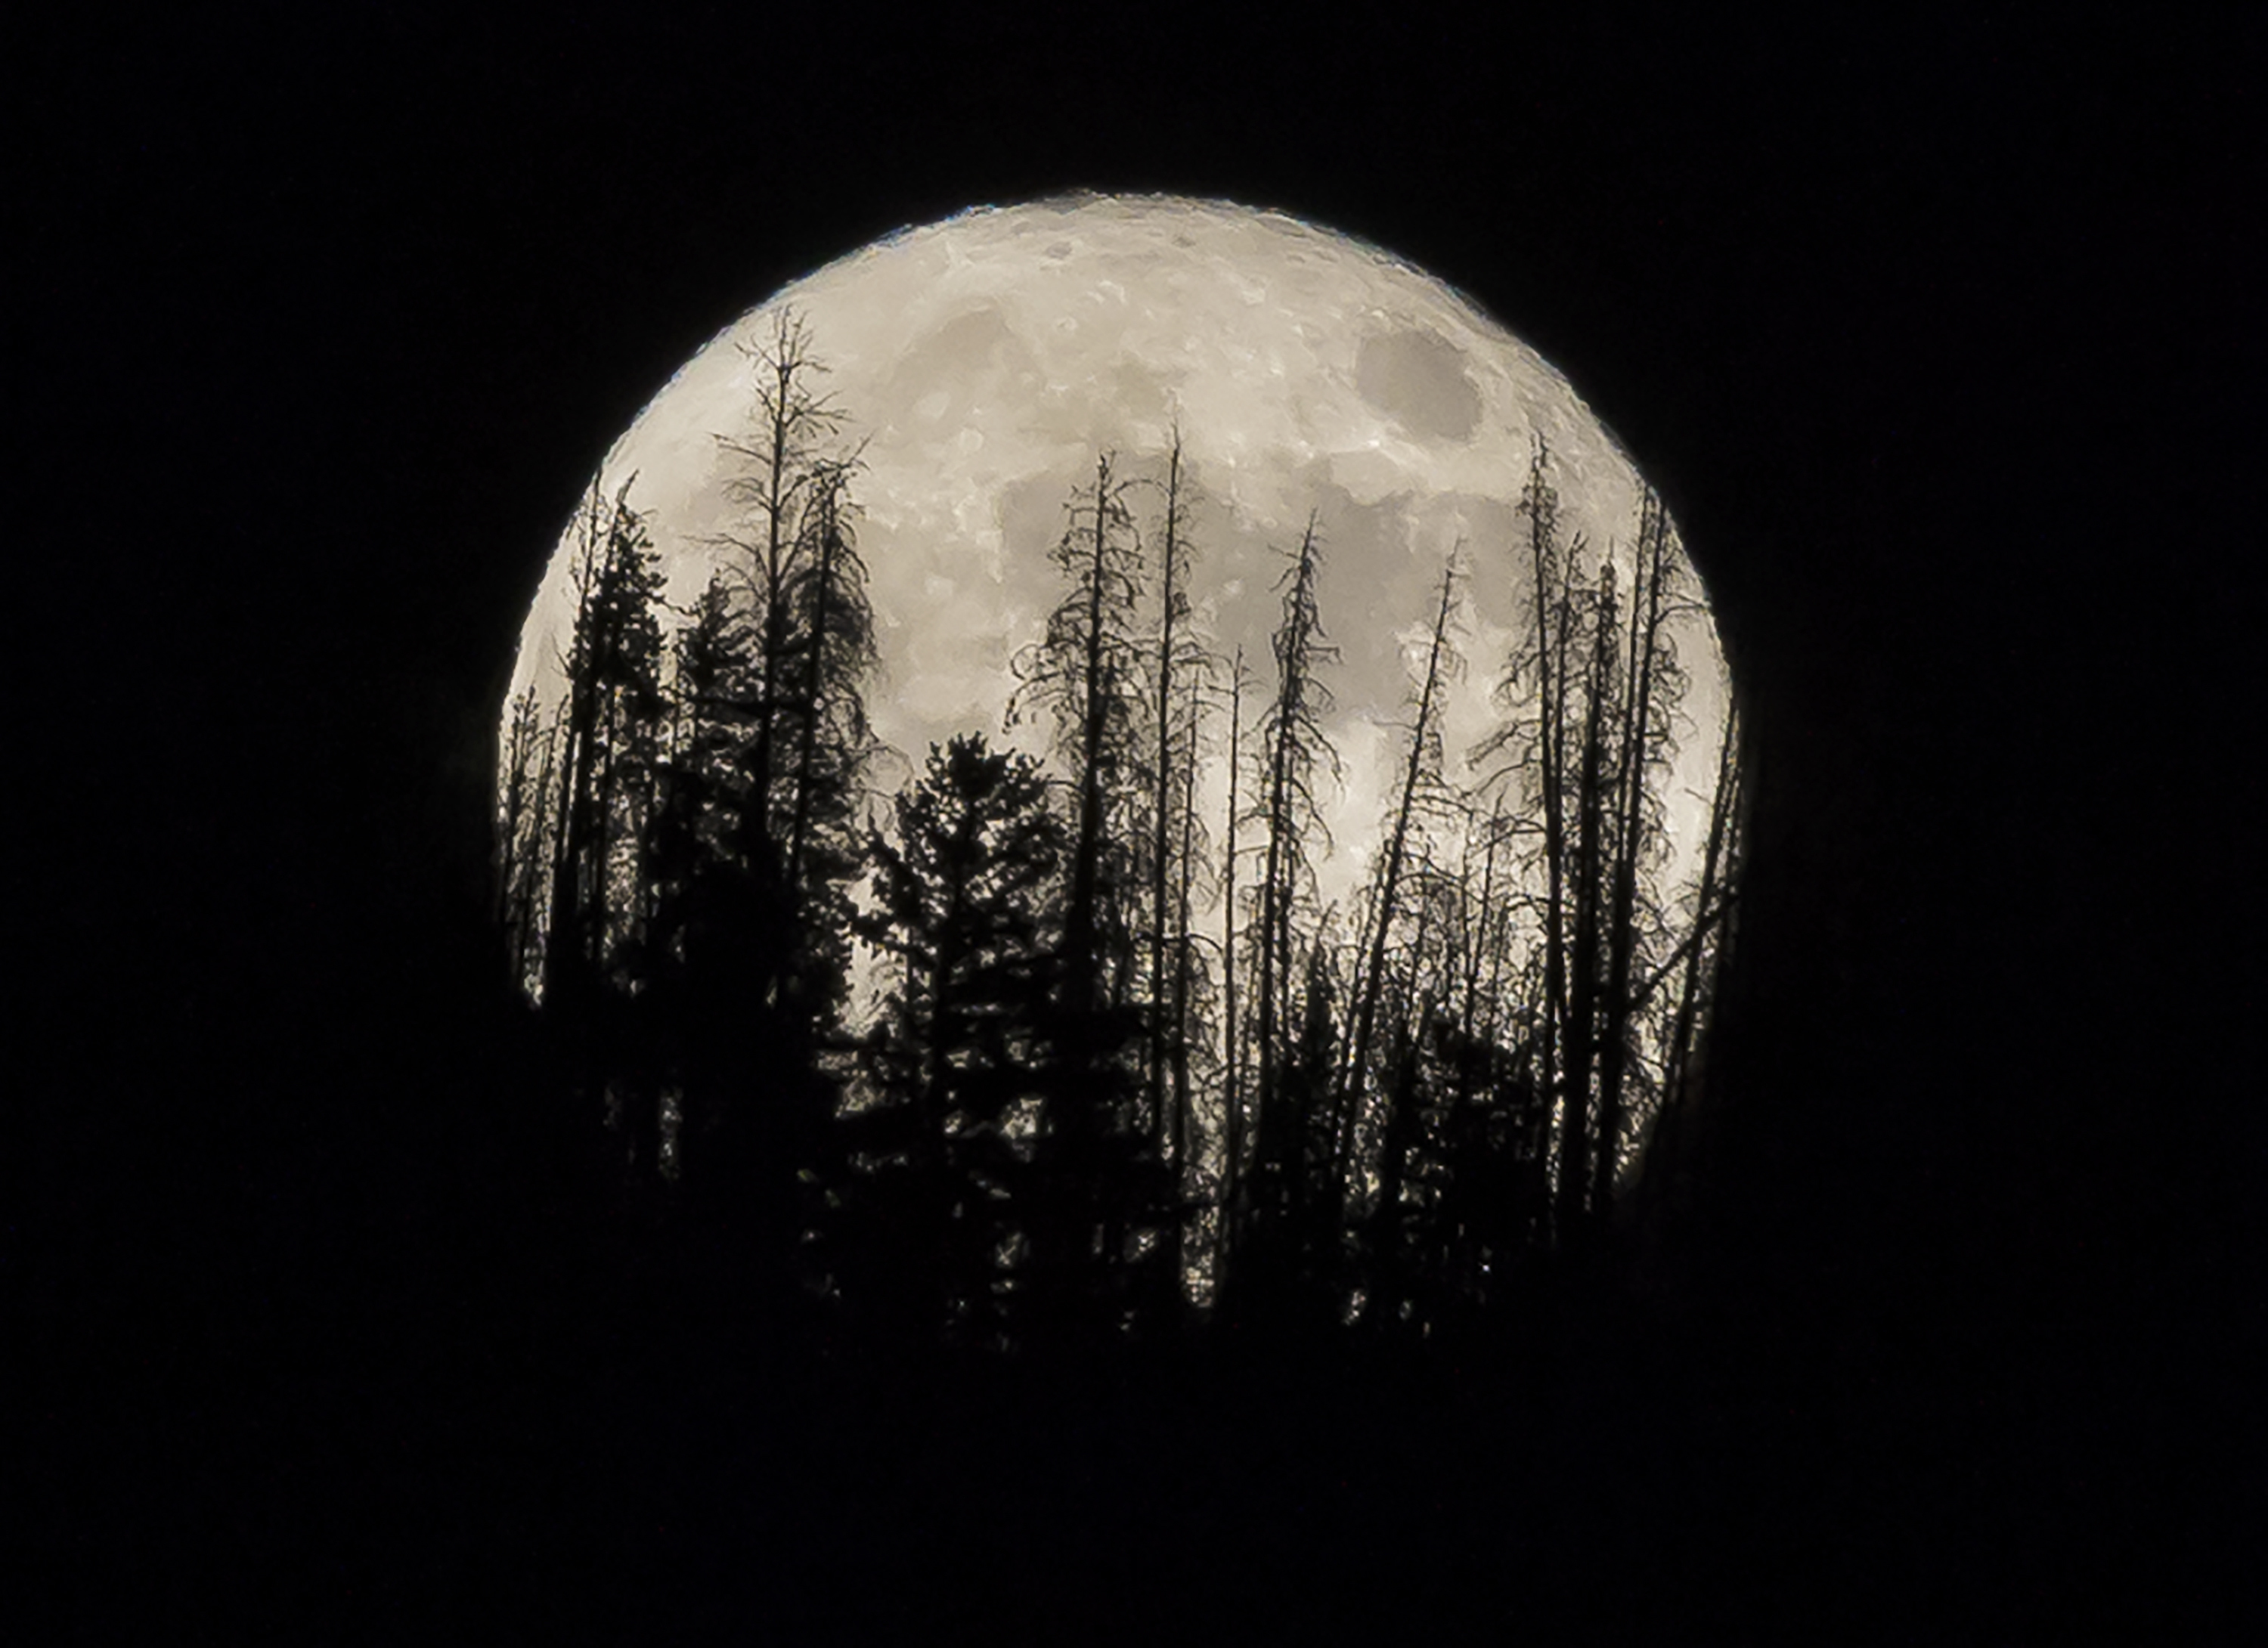 In this file photo, evergreen trees are silhouetted on the mountain top as a supermoon rises over over the Dark Sky Community of Summit Sky Ranch in Silverthorne, Colo. on Nov. 14, 2016.